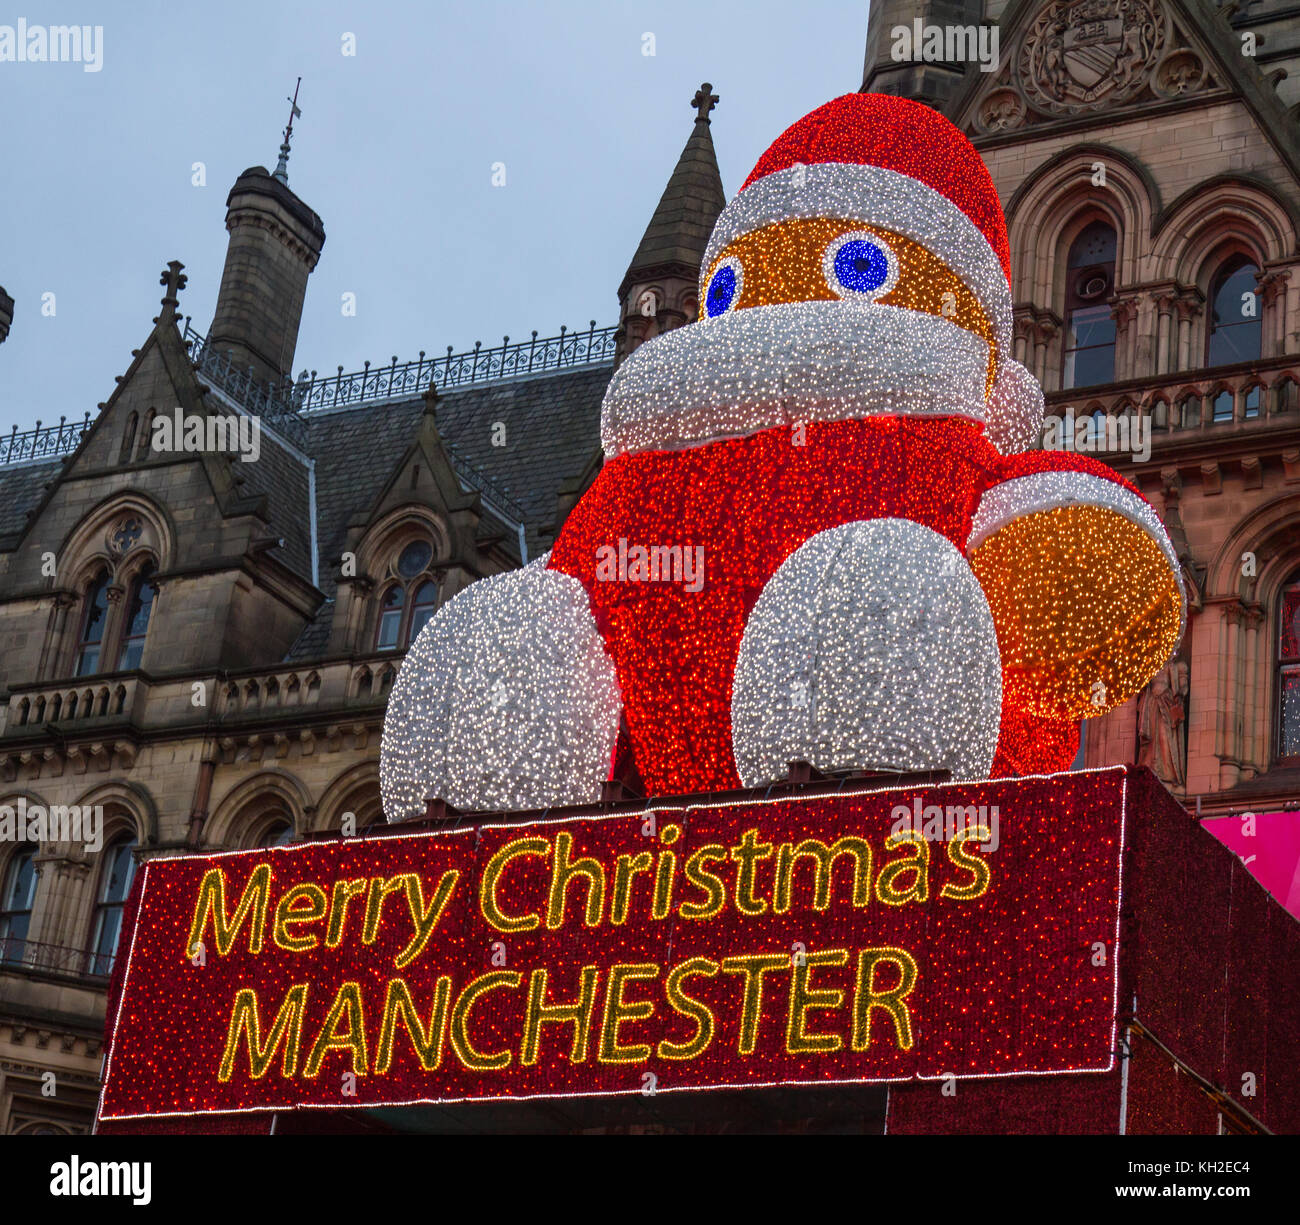 Giant Santa Claus above the Entrance to Manchester Town Hall, UK. Taken on 11 Nov 2017 on the first Saturday of - Stock Image